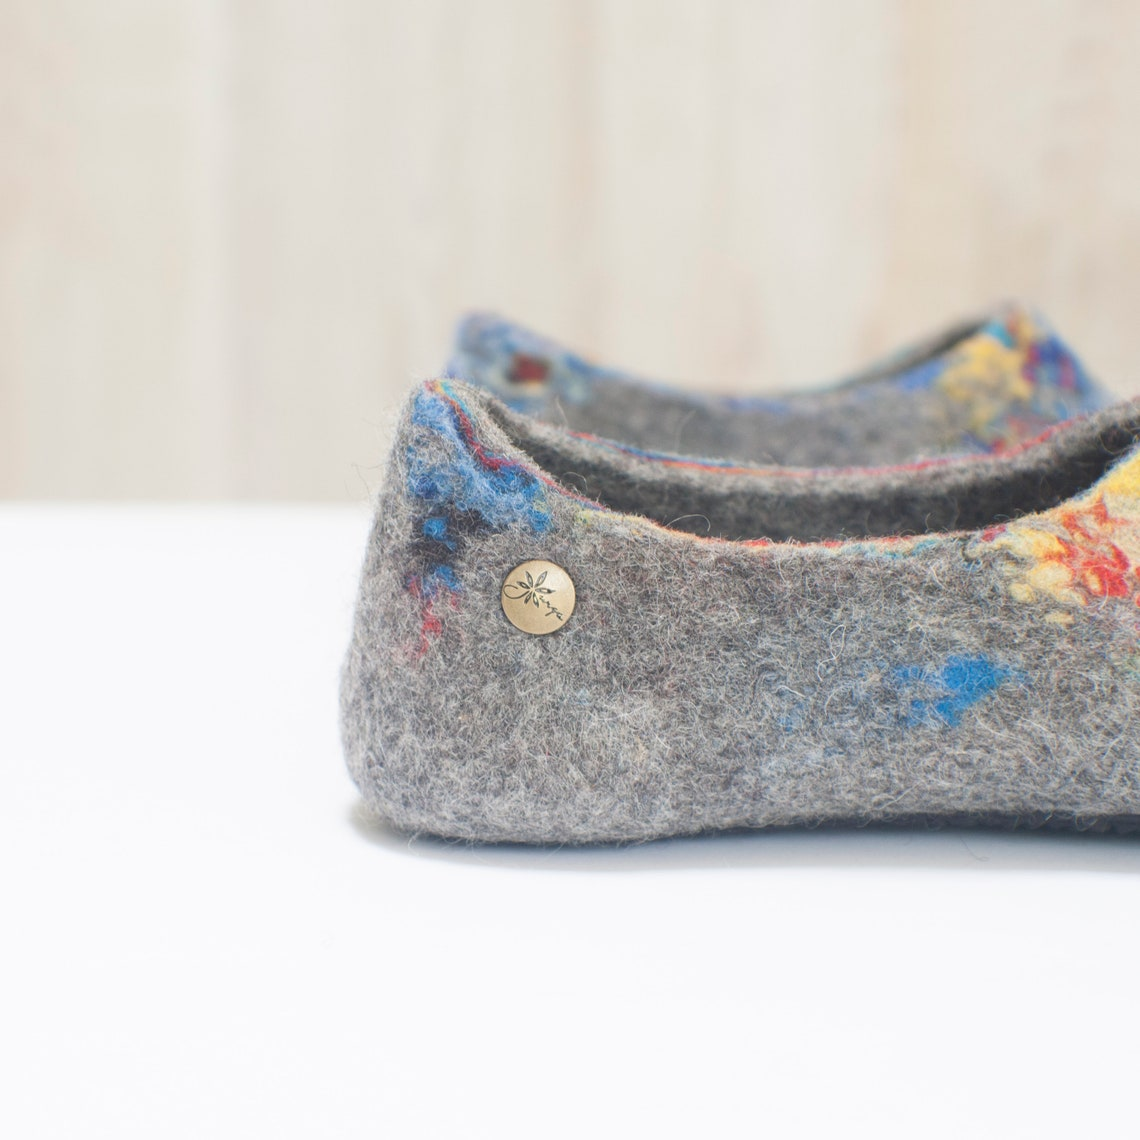 Felted slippers for women made of grey and black natural wool